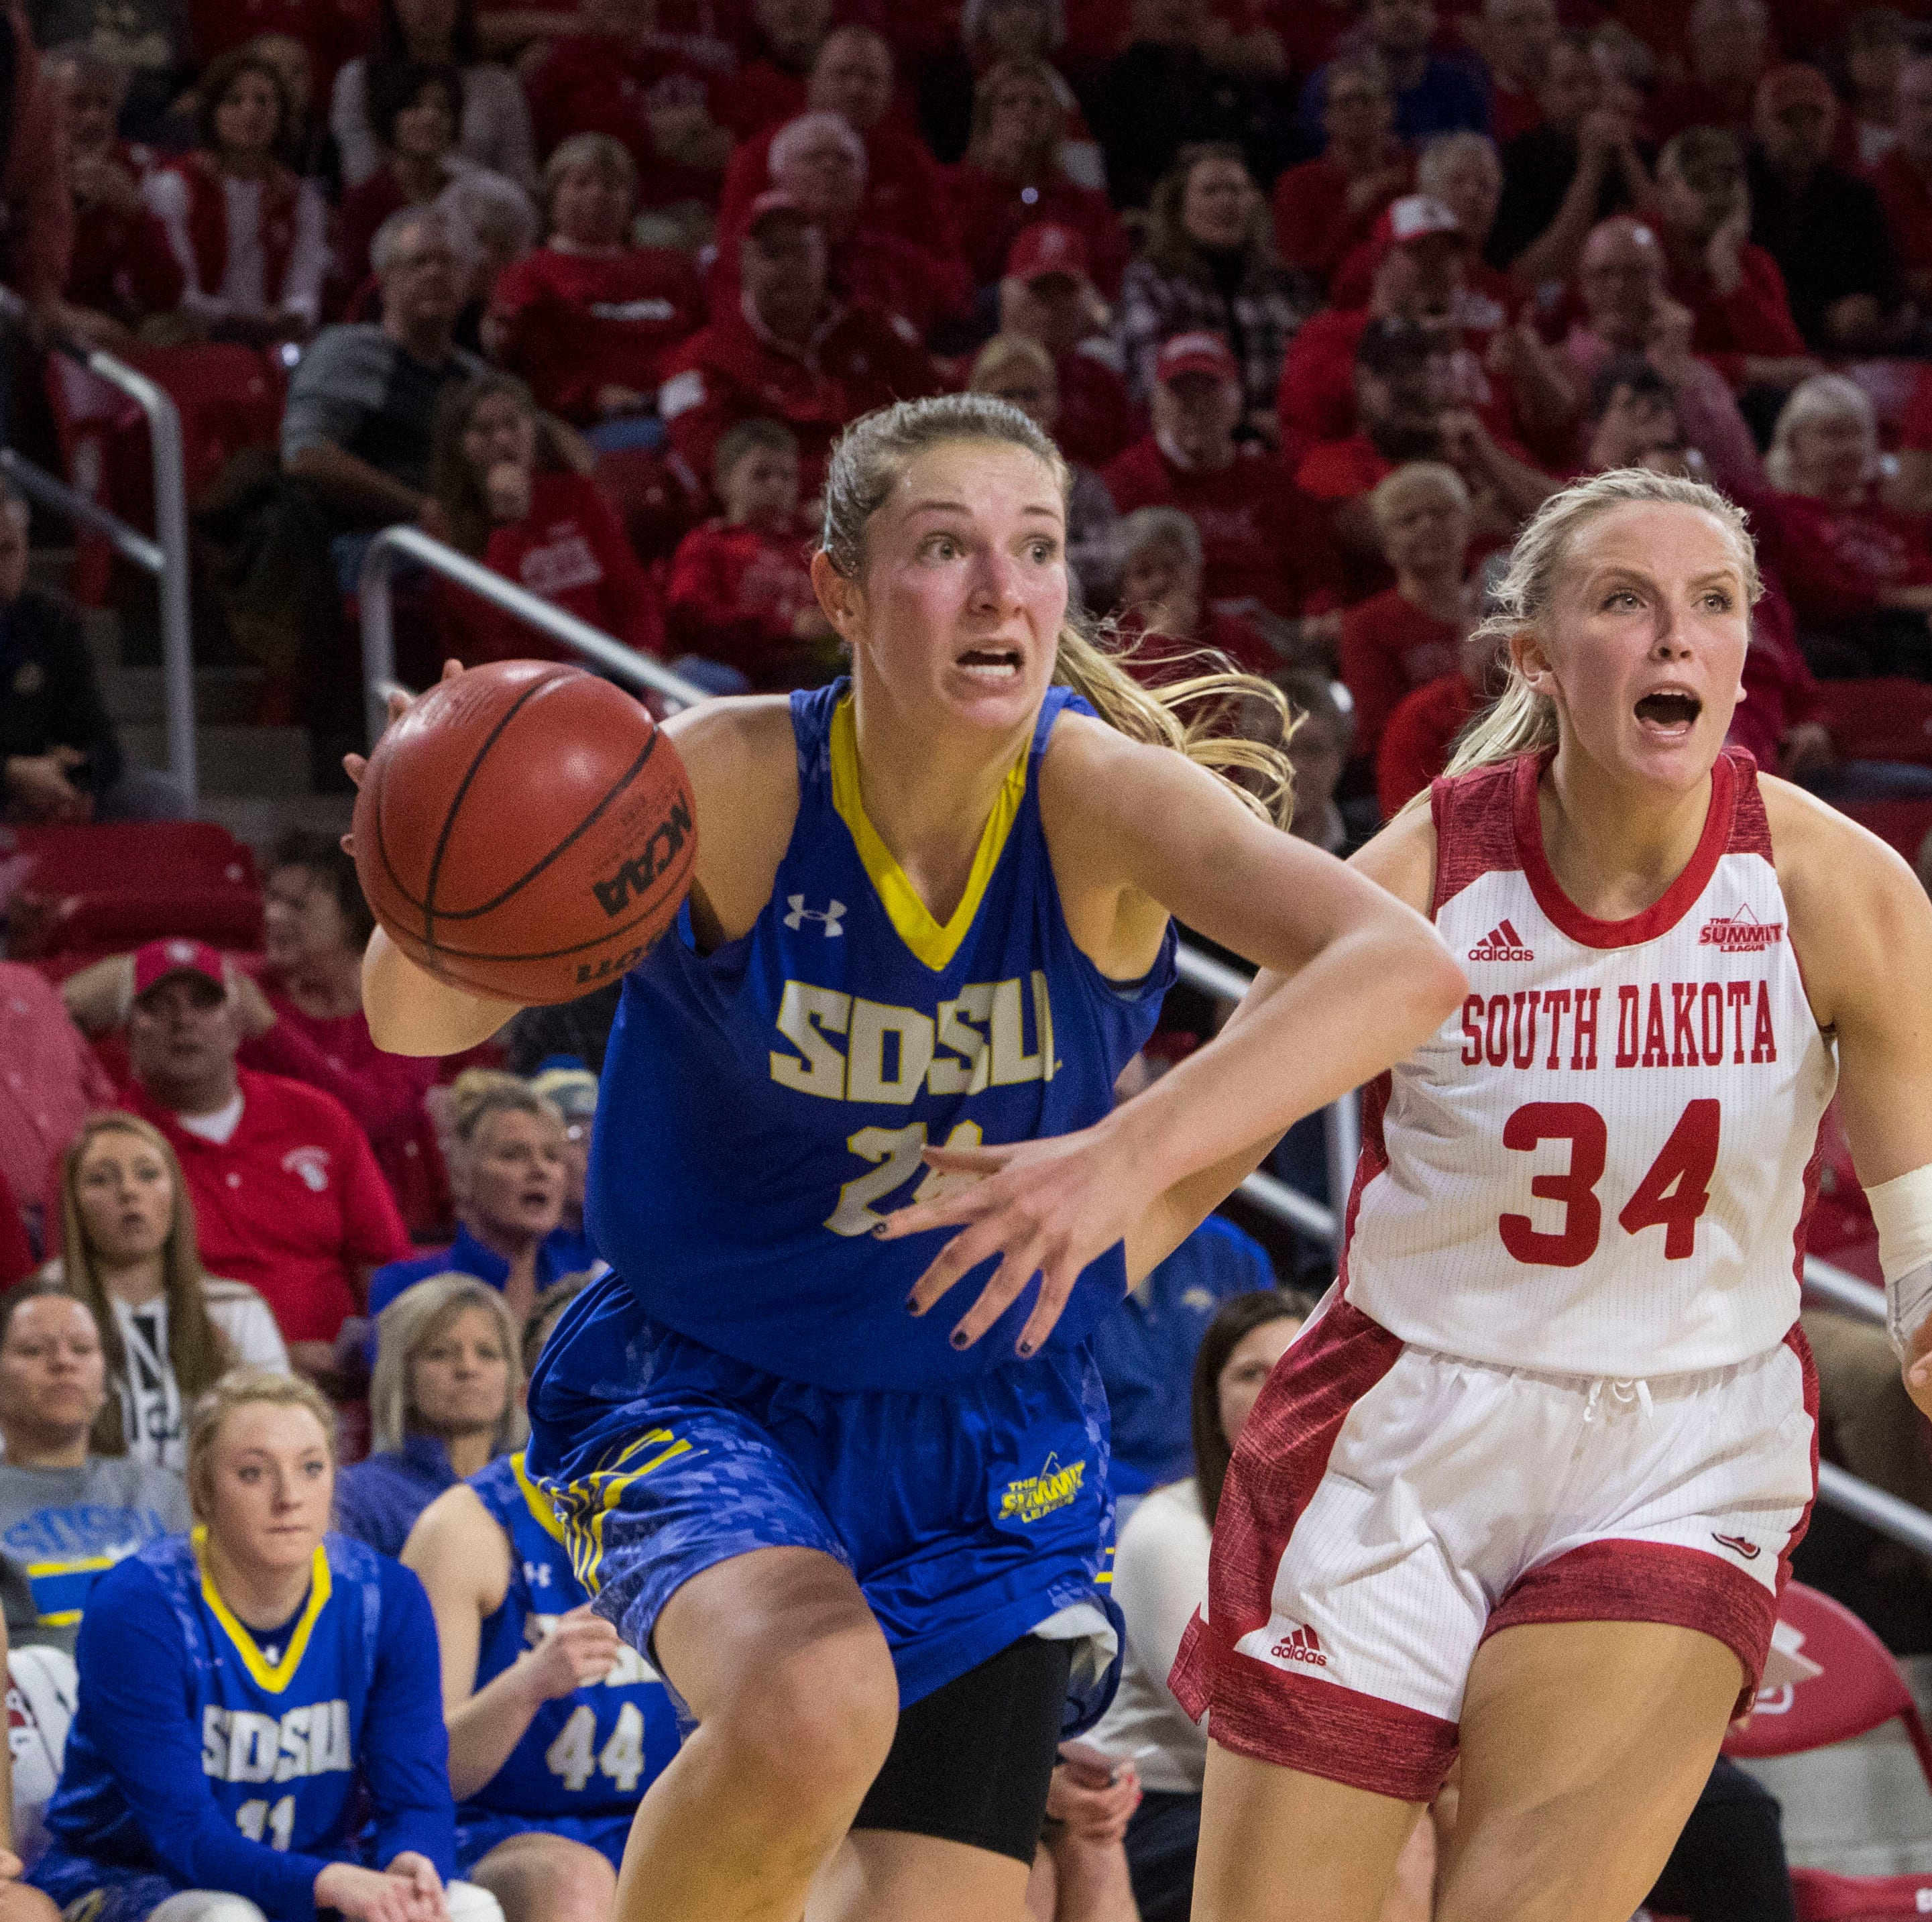 Tagyn Larson doing heavy lifting for South Dakota State women